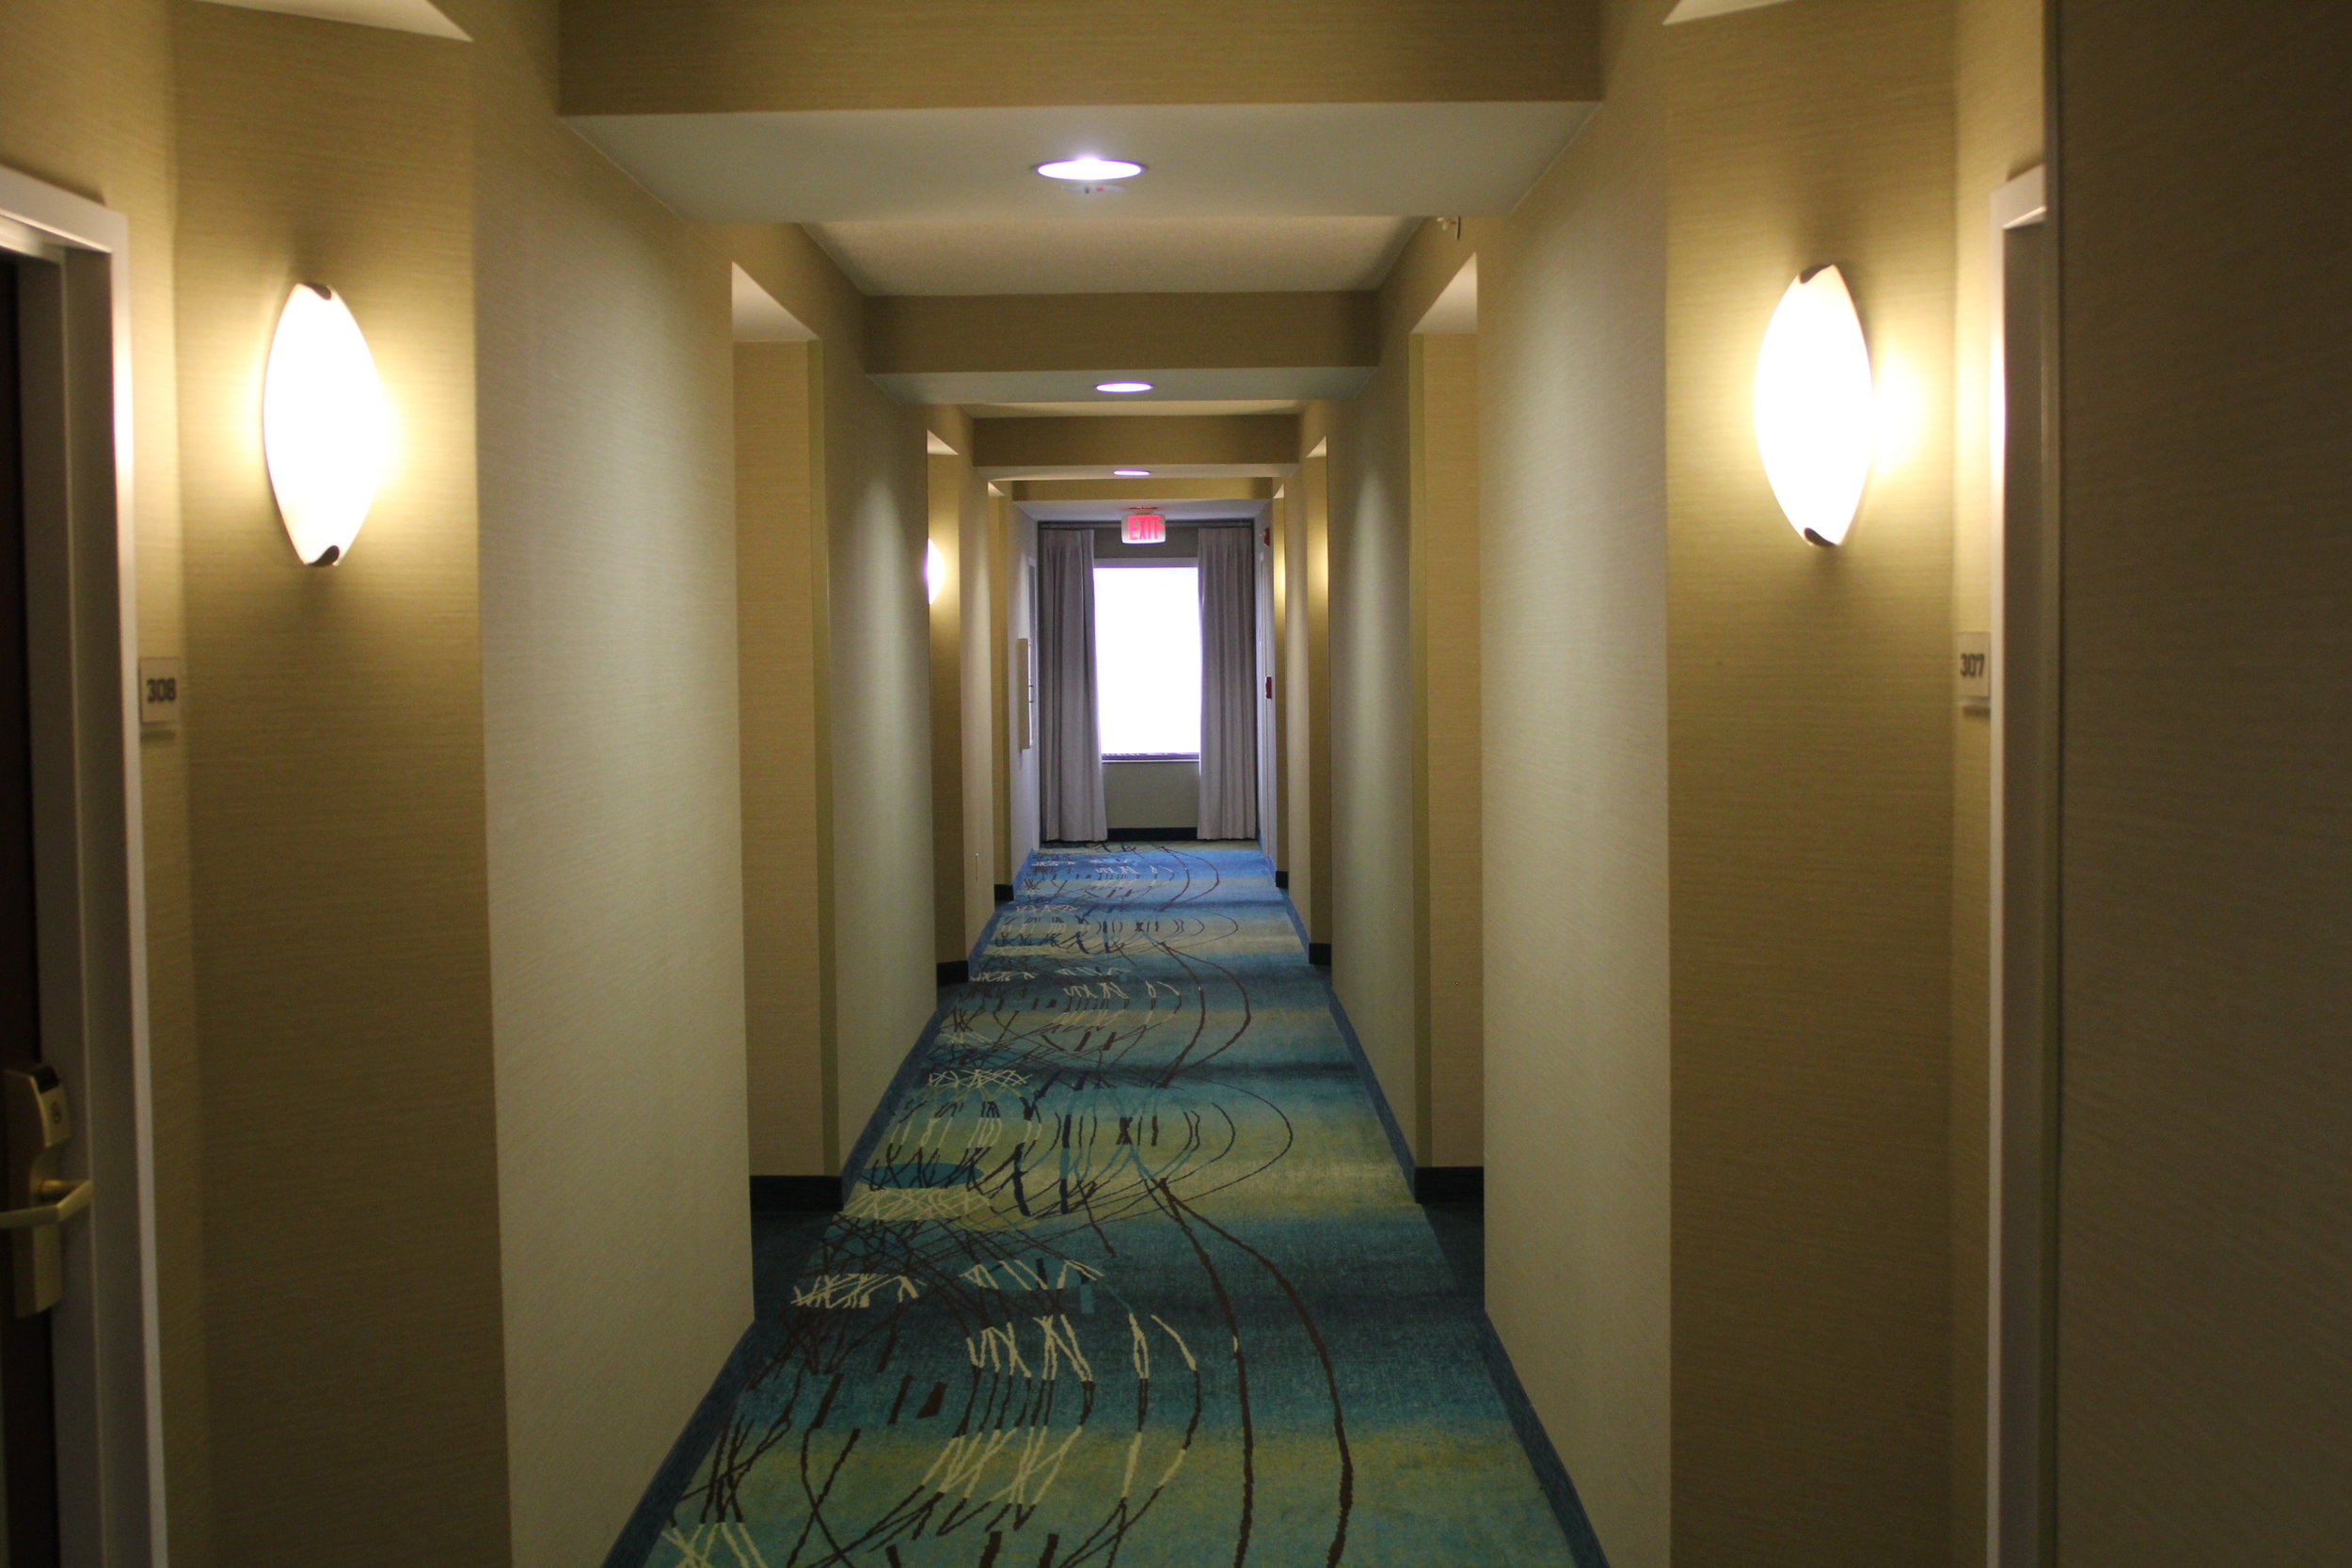 SpringHill Suites Charlotte Airport –Hallway